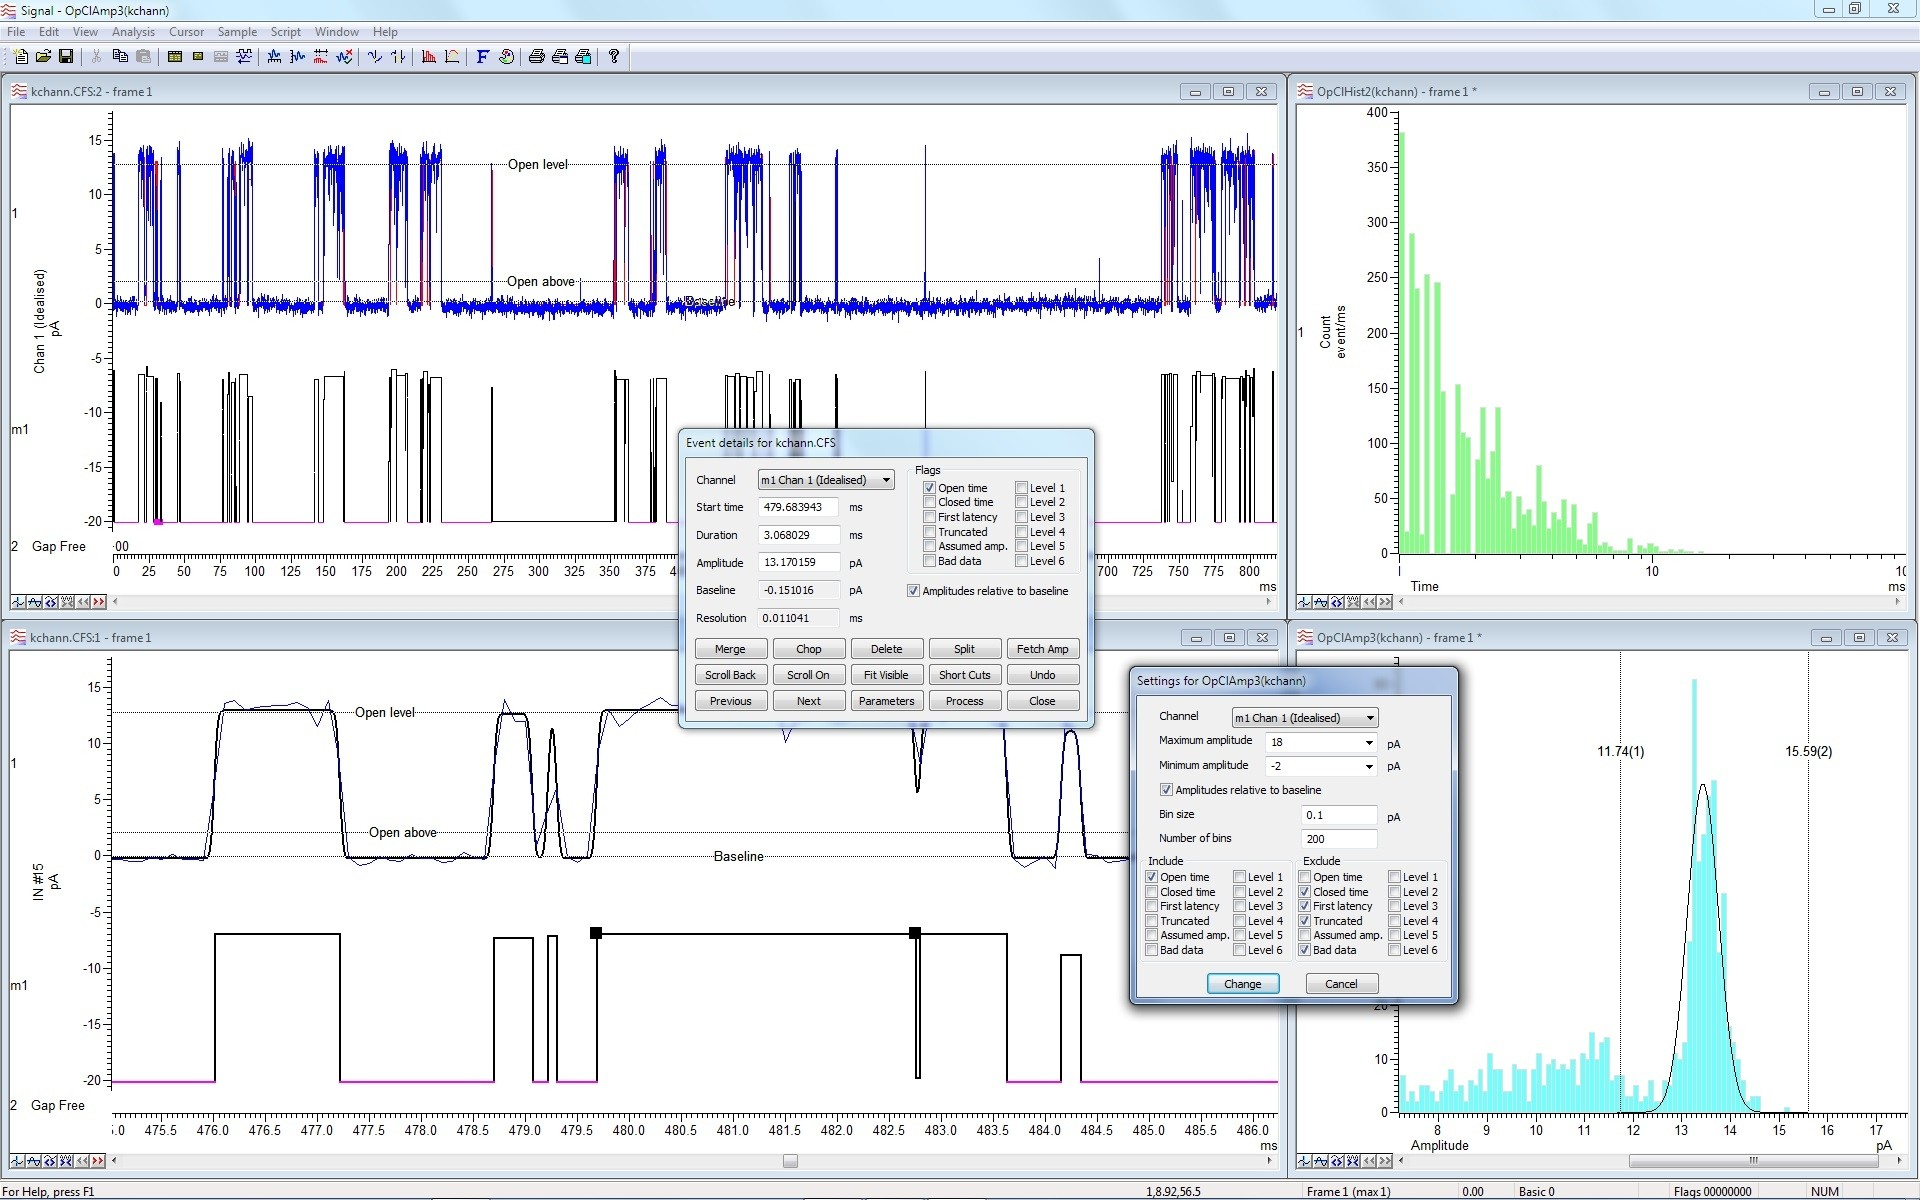 Single channel patch clamp analysis